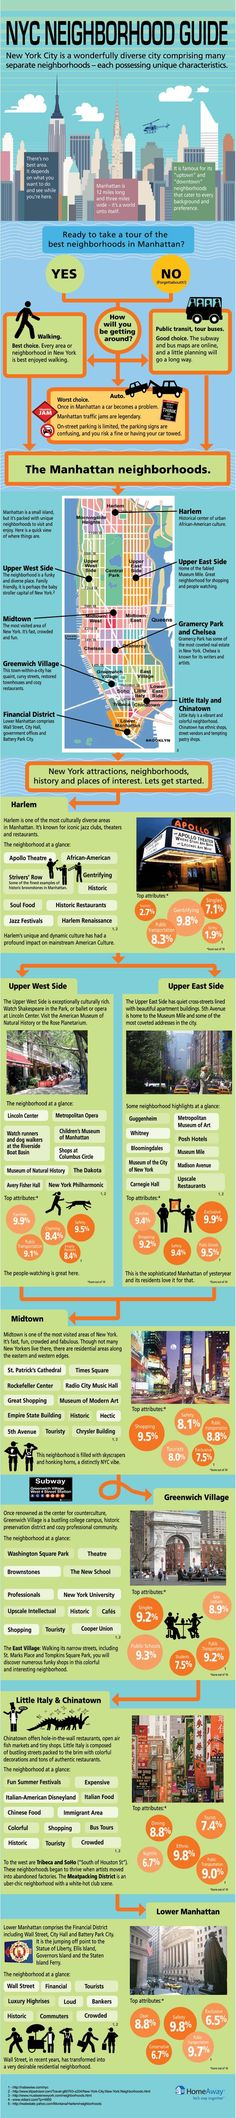 NYC Neighborhood Guide - Visit Like a Local [Infographic] @Allison j.d.m Ramey @Sarah Chintomby Elhazin